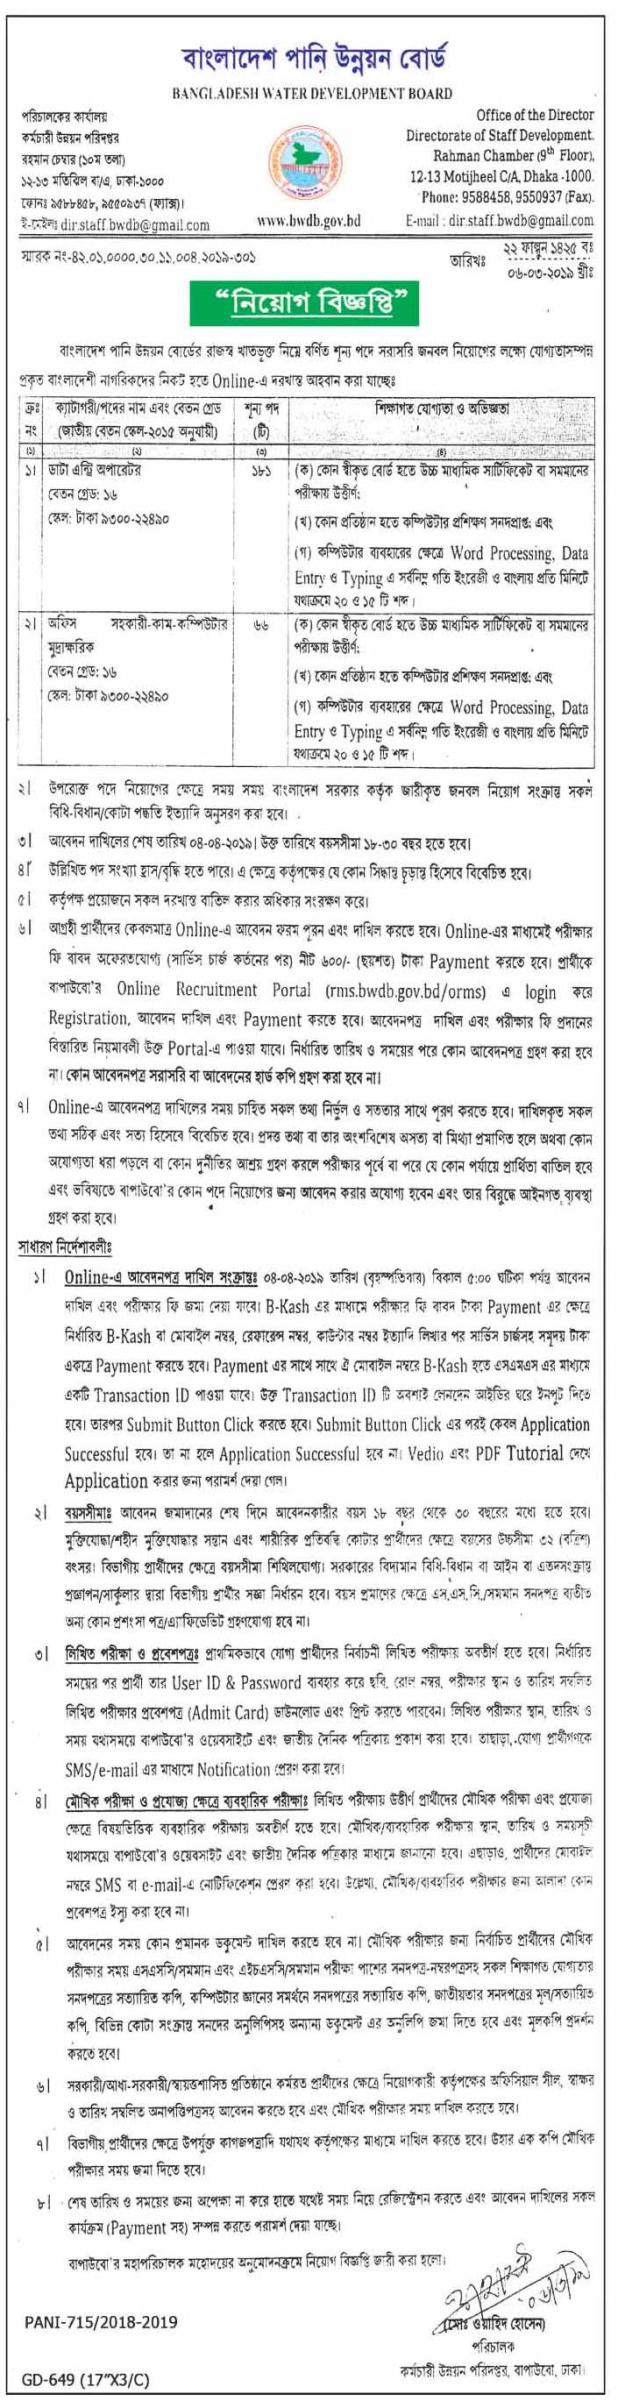 BD Jobs Bangladesh Water Development Board Job Circular 2019 Govt Job Circular